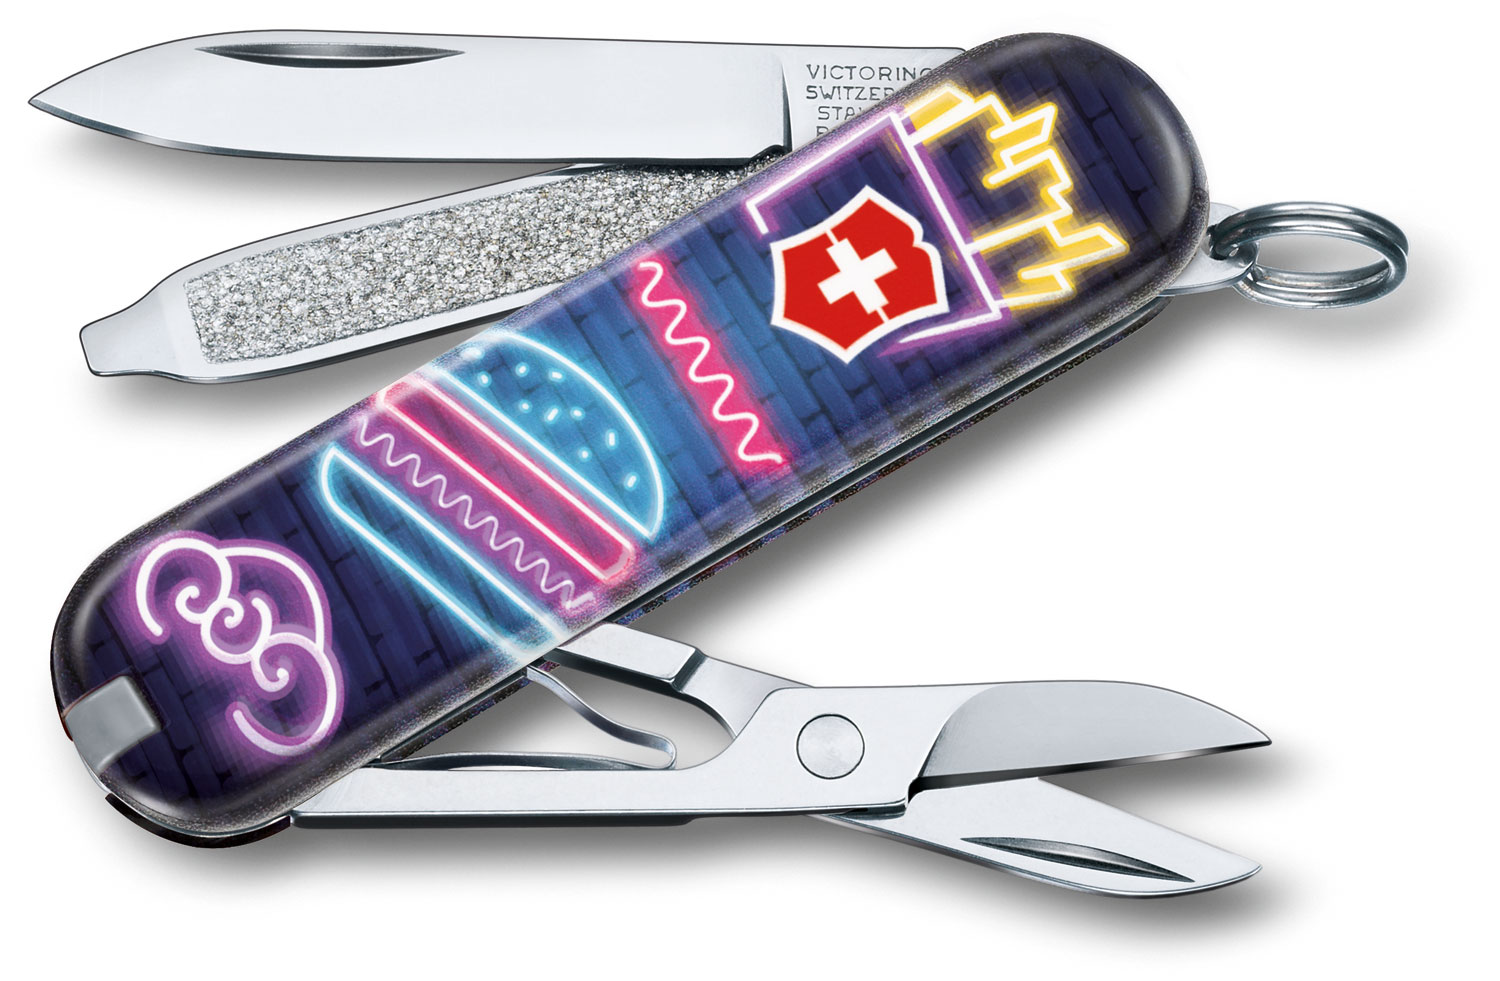 Victorinox Swiss Army Contest Classic SD Limited Edition 2019 Multi-Tool, Burger Bar, 2.25 inch Closed